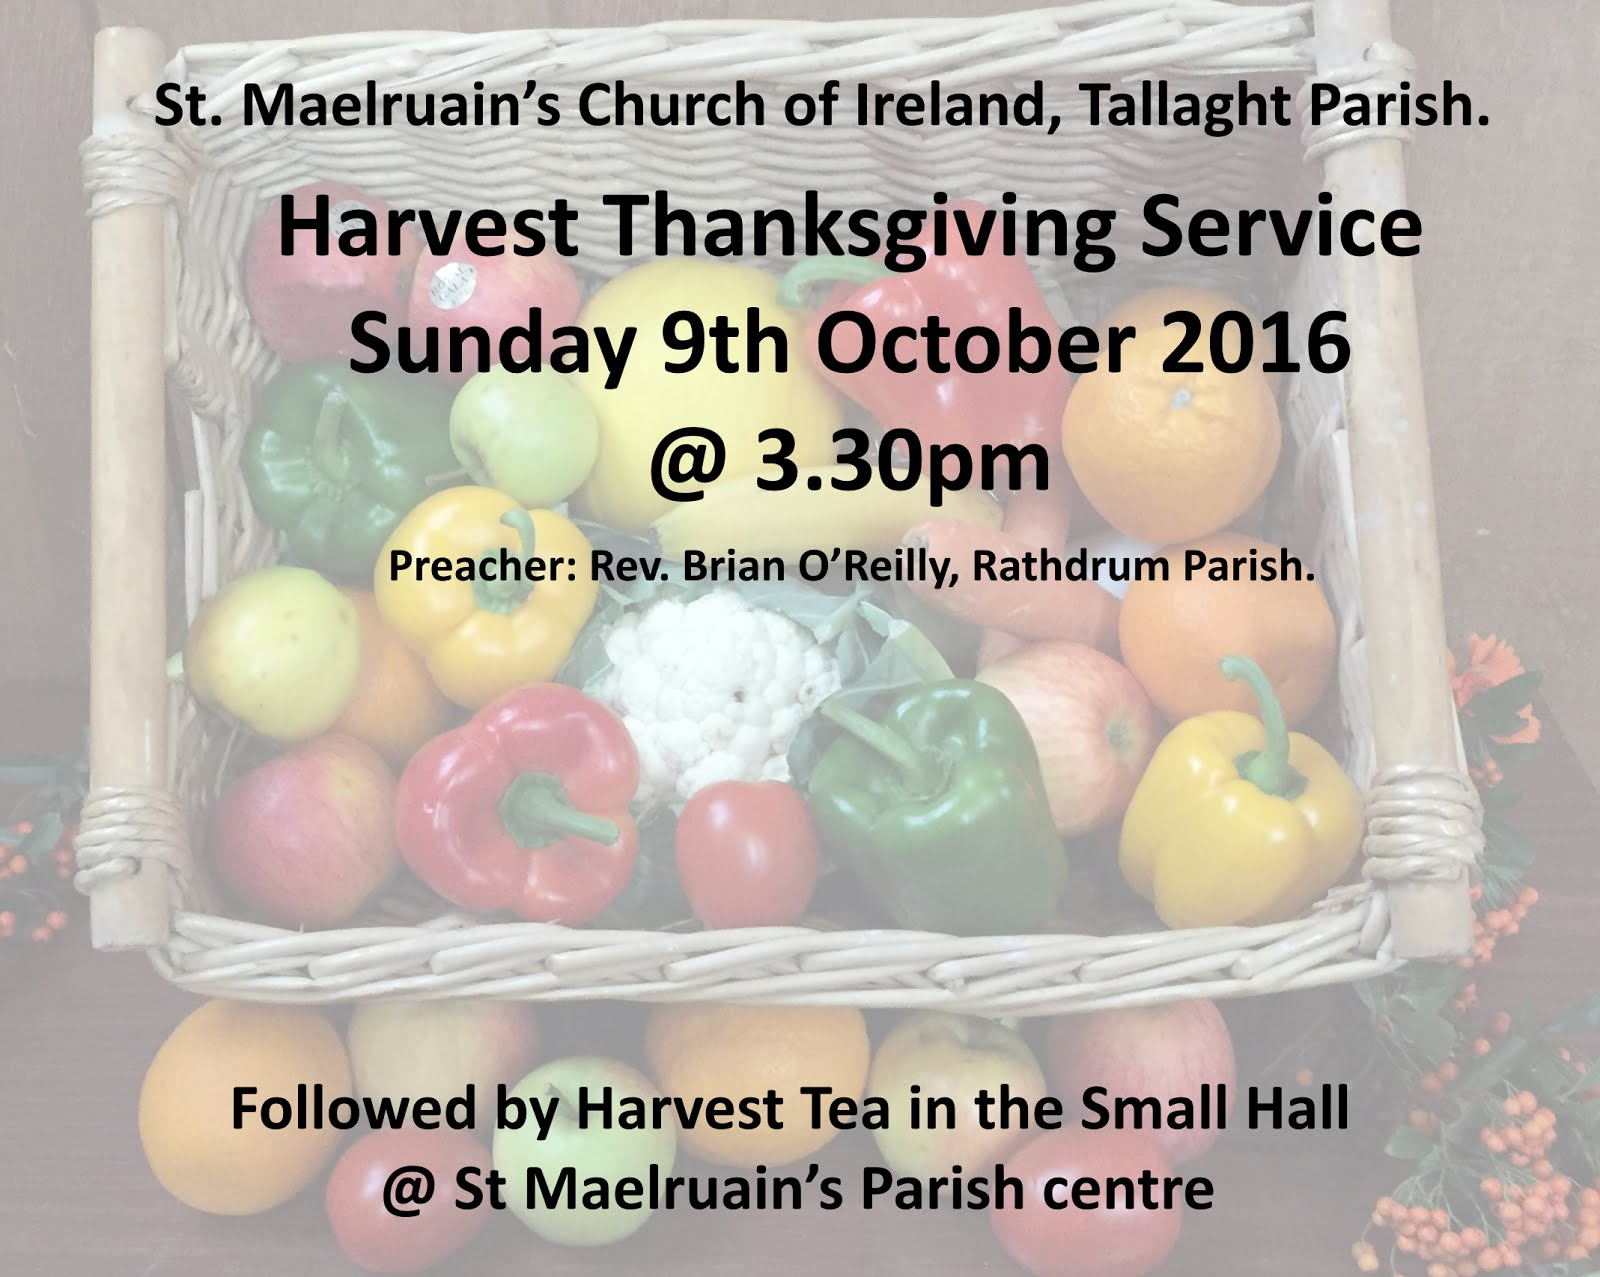 Harvest Thanksgiving